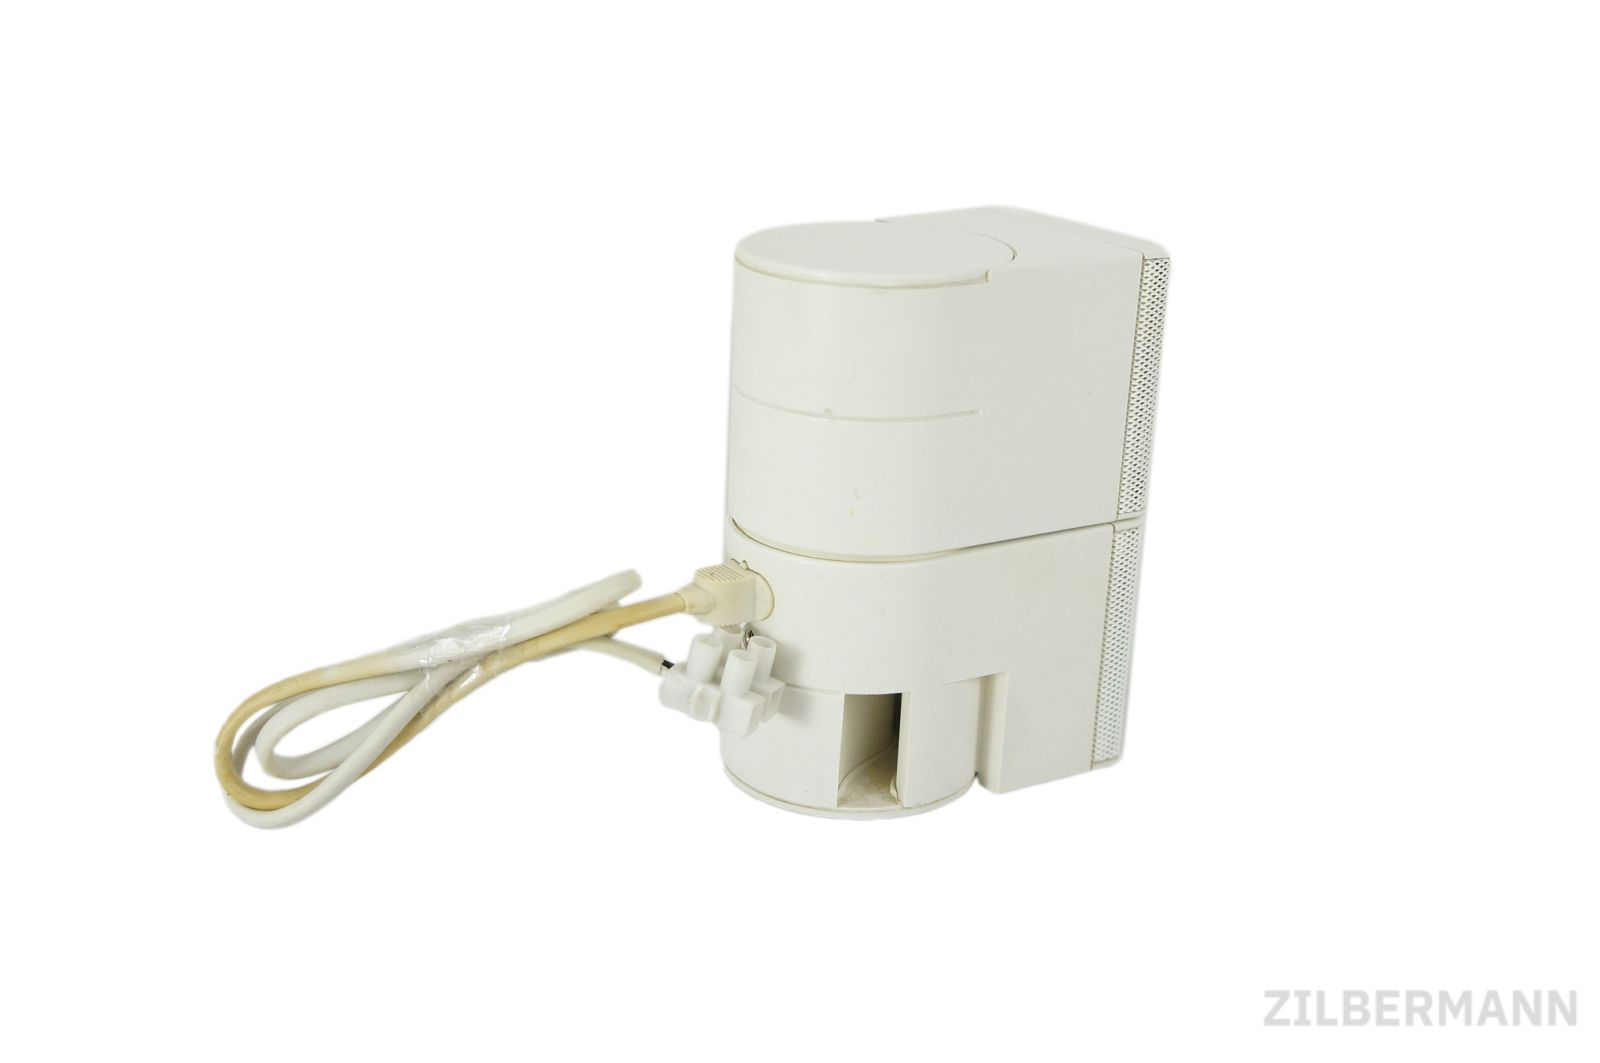 Bose_Jewel_Cube_Box_Satellit_mit_Adapter_Weiss_02